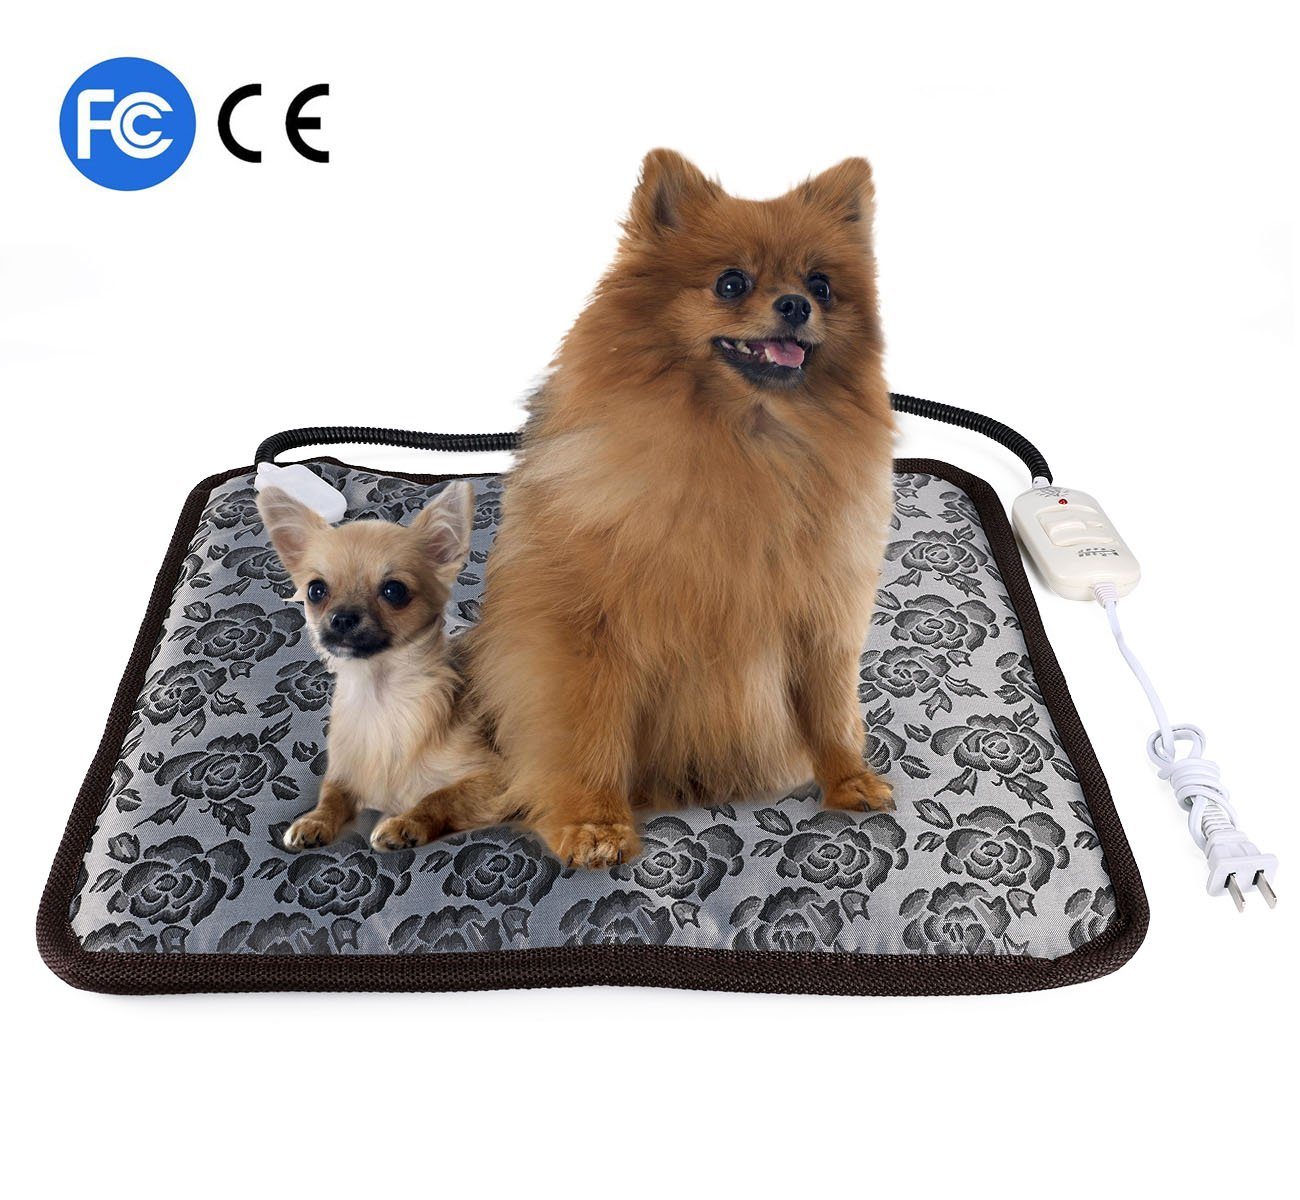 Get Quotations Pet Heating Pad Electric For Dogs Cats With Chew Resistant Cord Waterproof